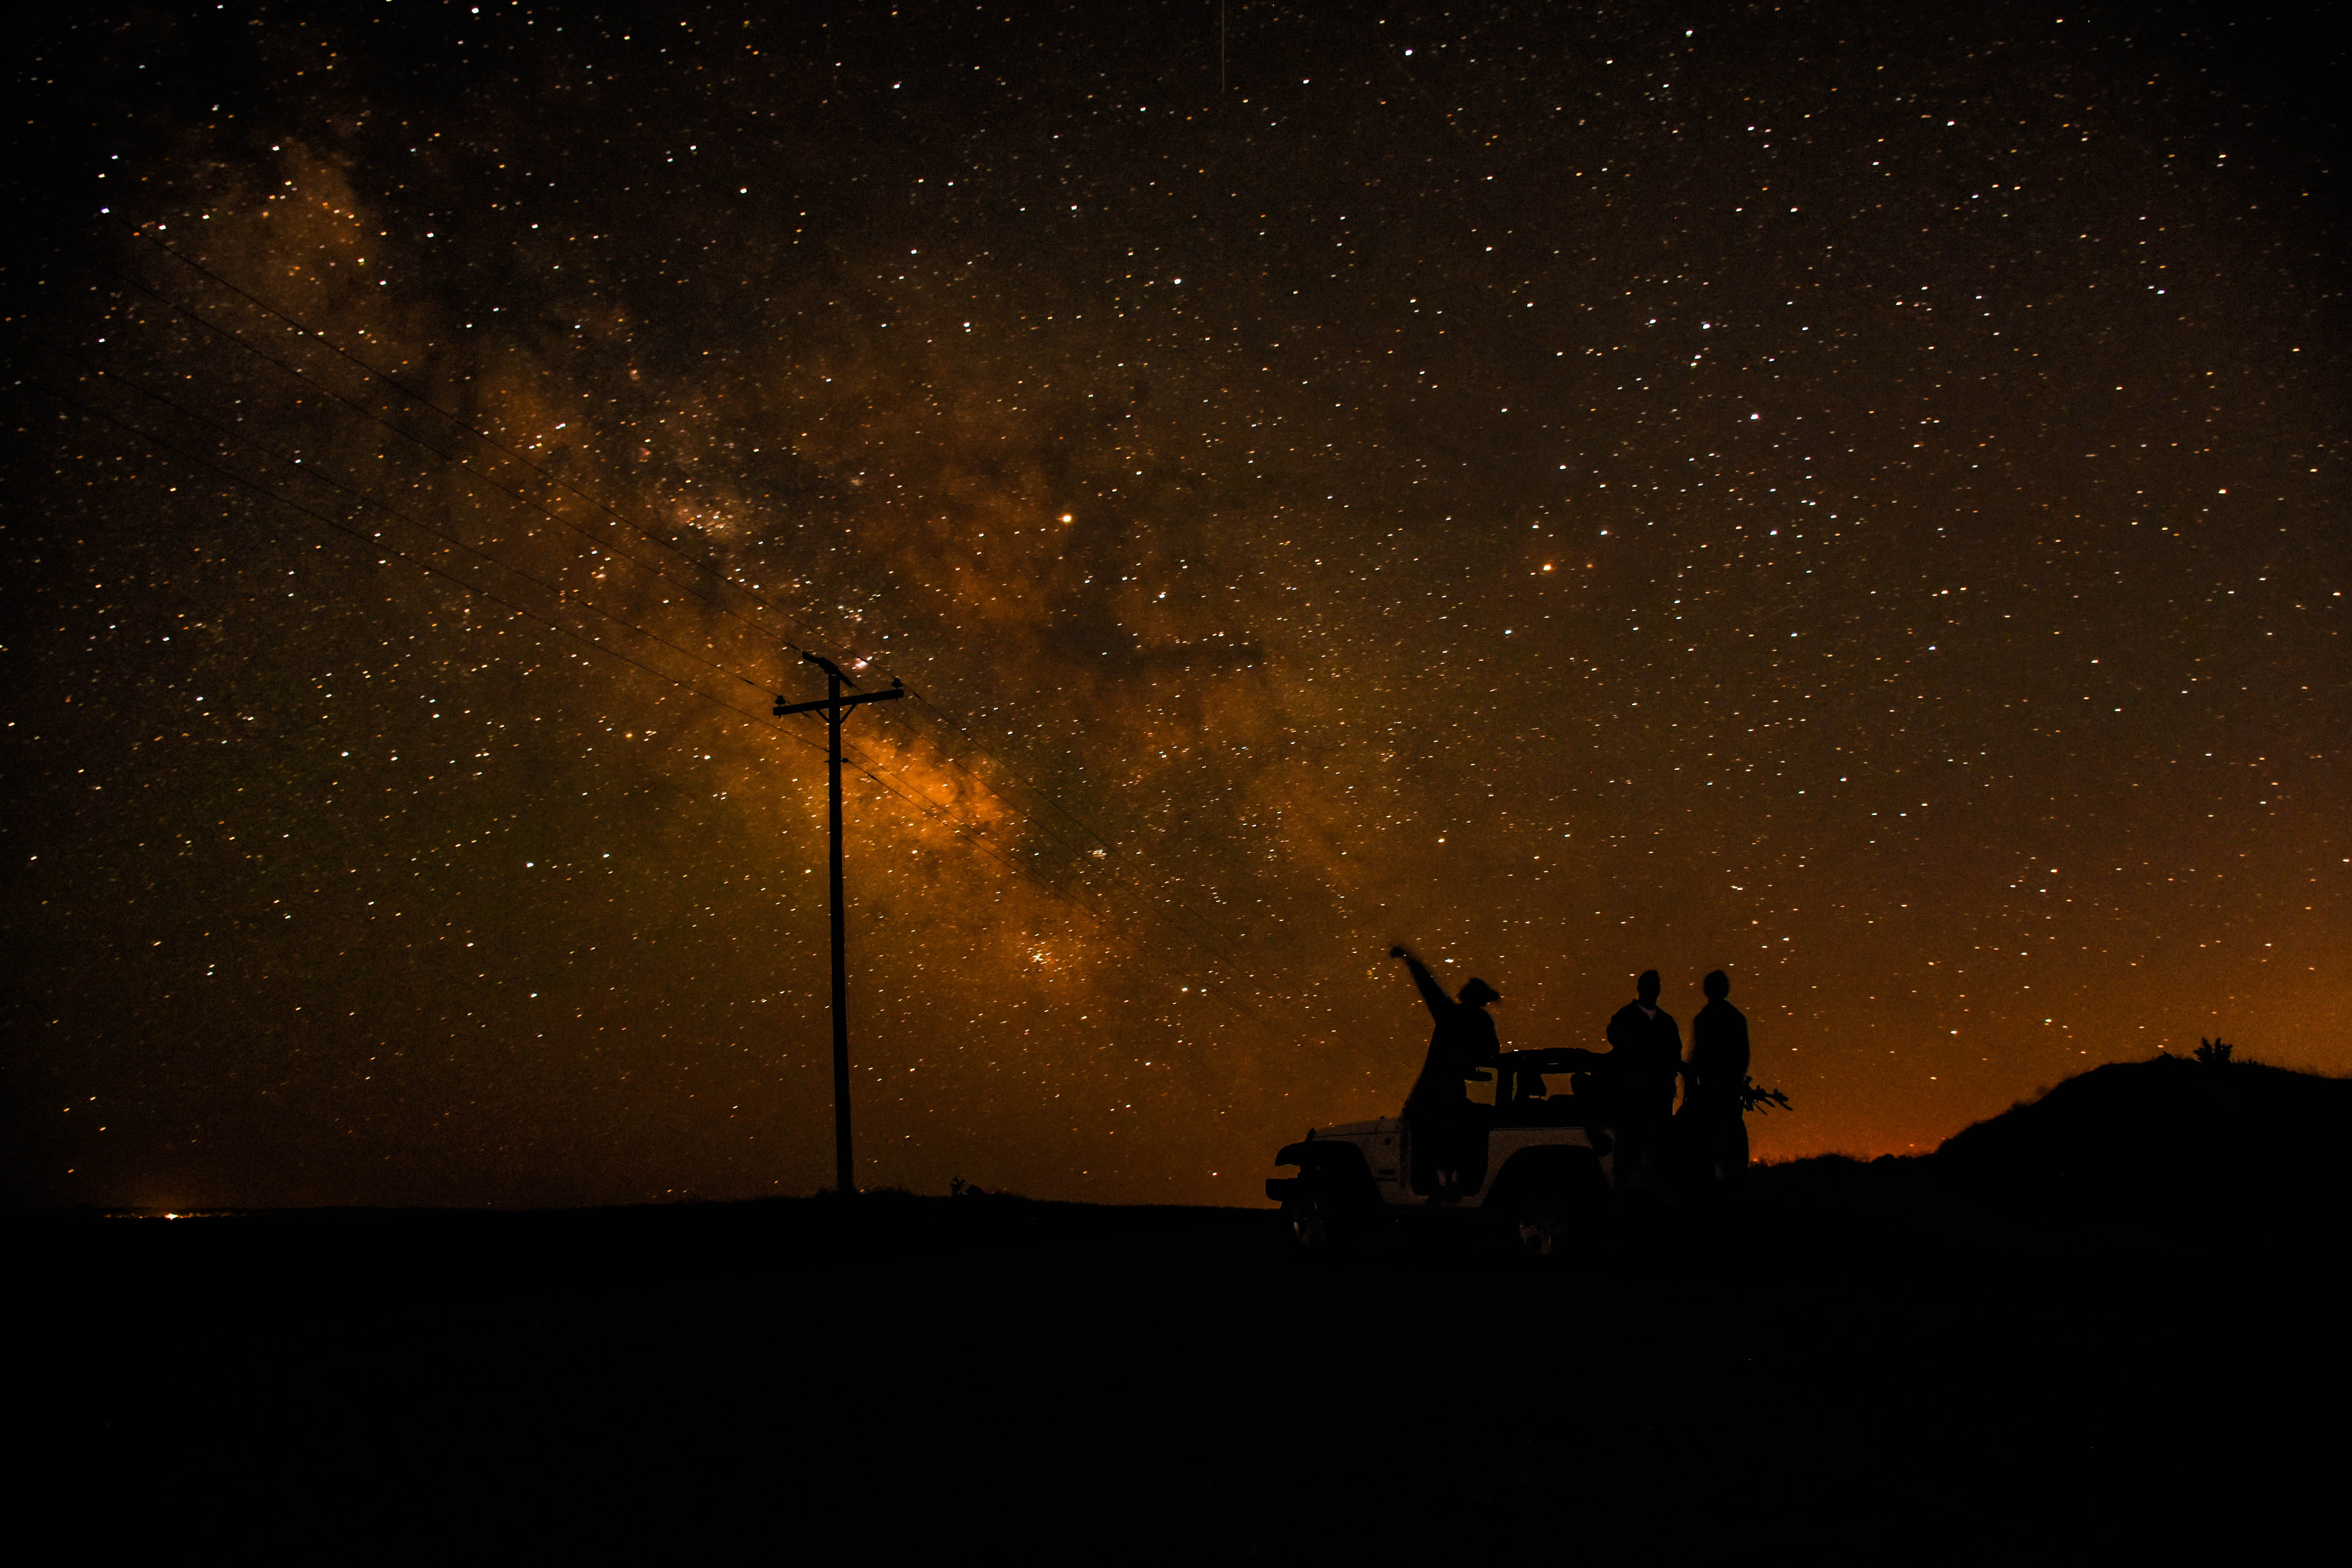 Silhouette of people in Rexburg standing by a jeep looking and pointing at the stars above